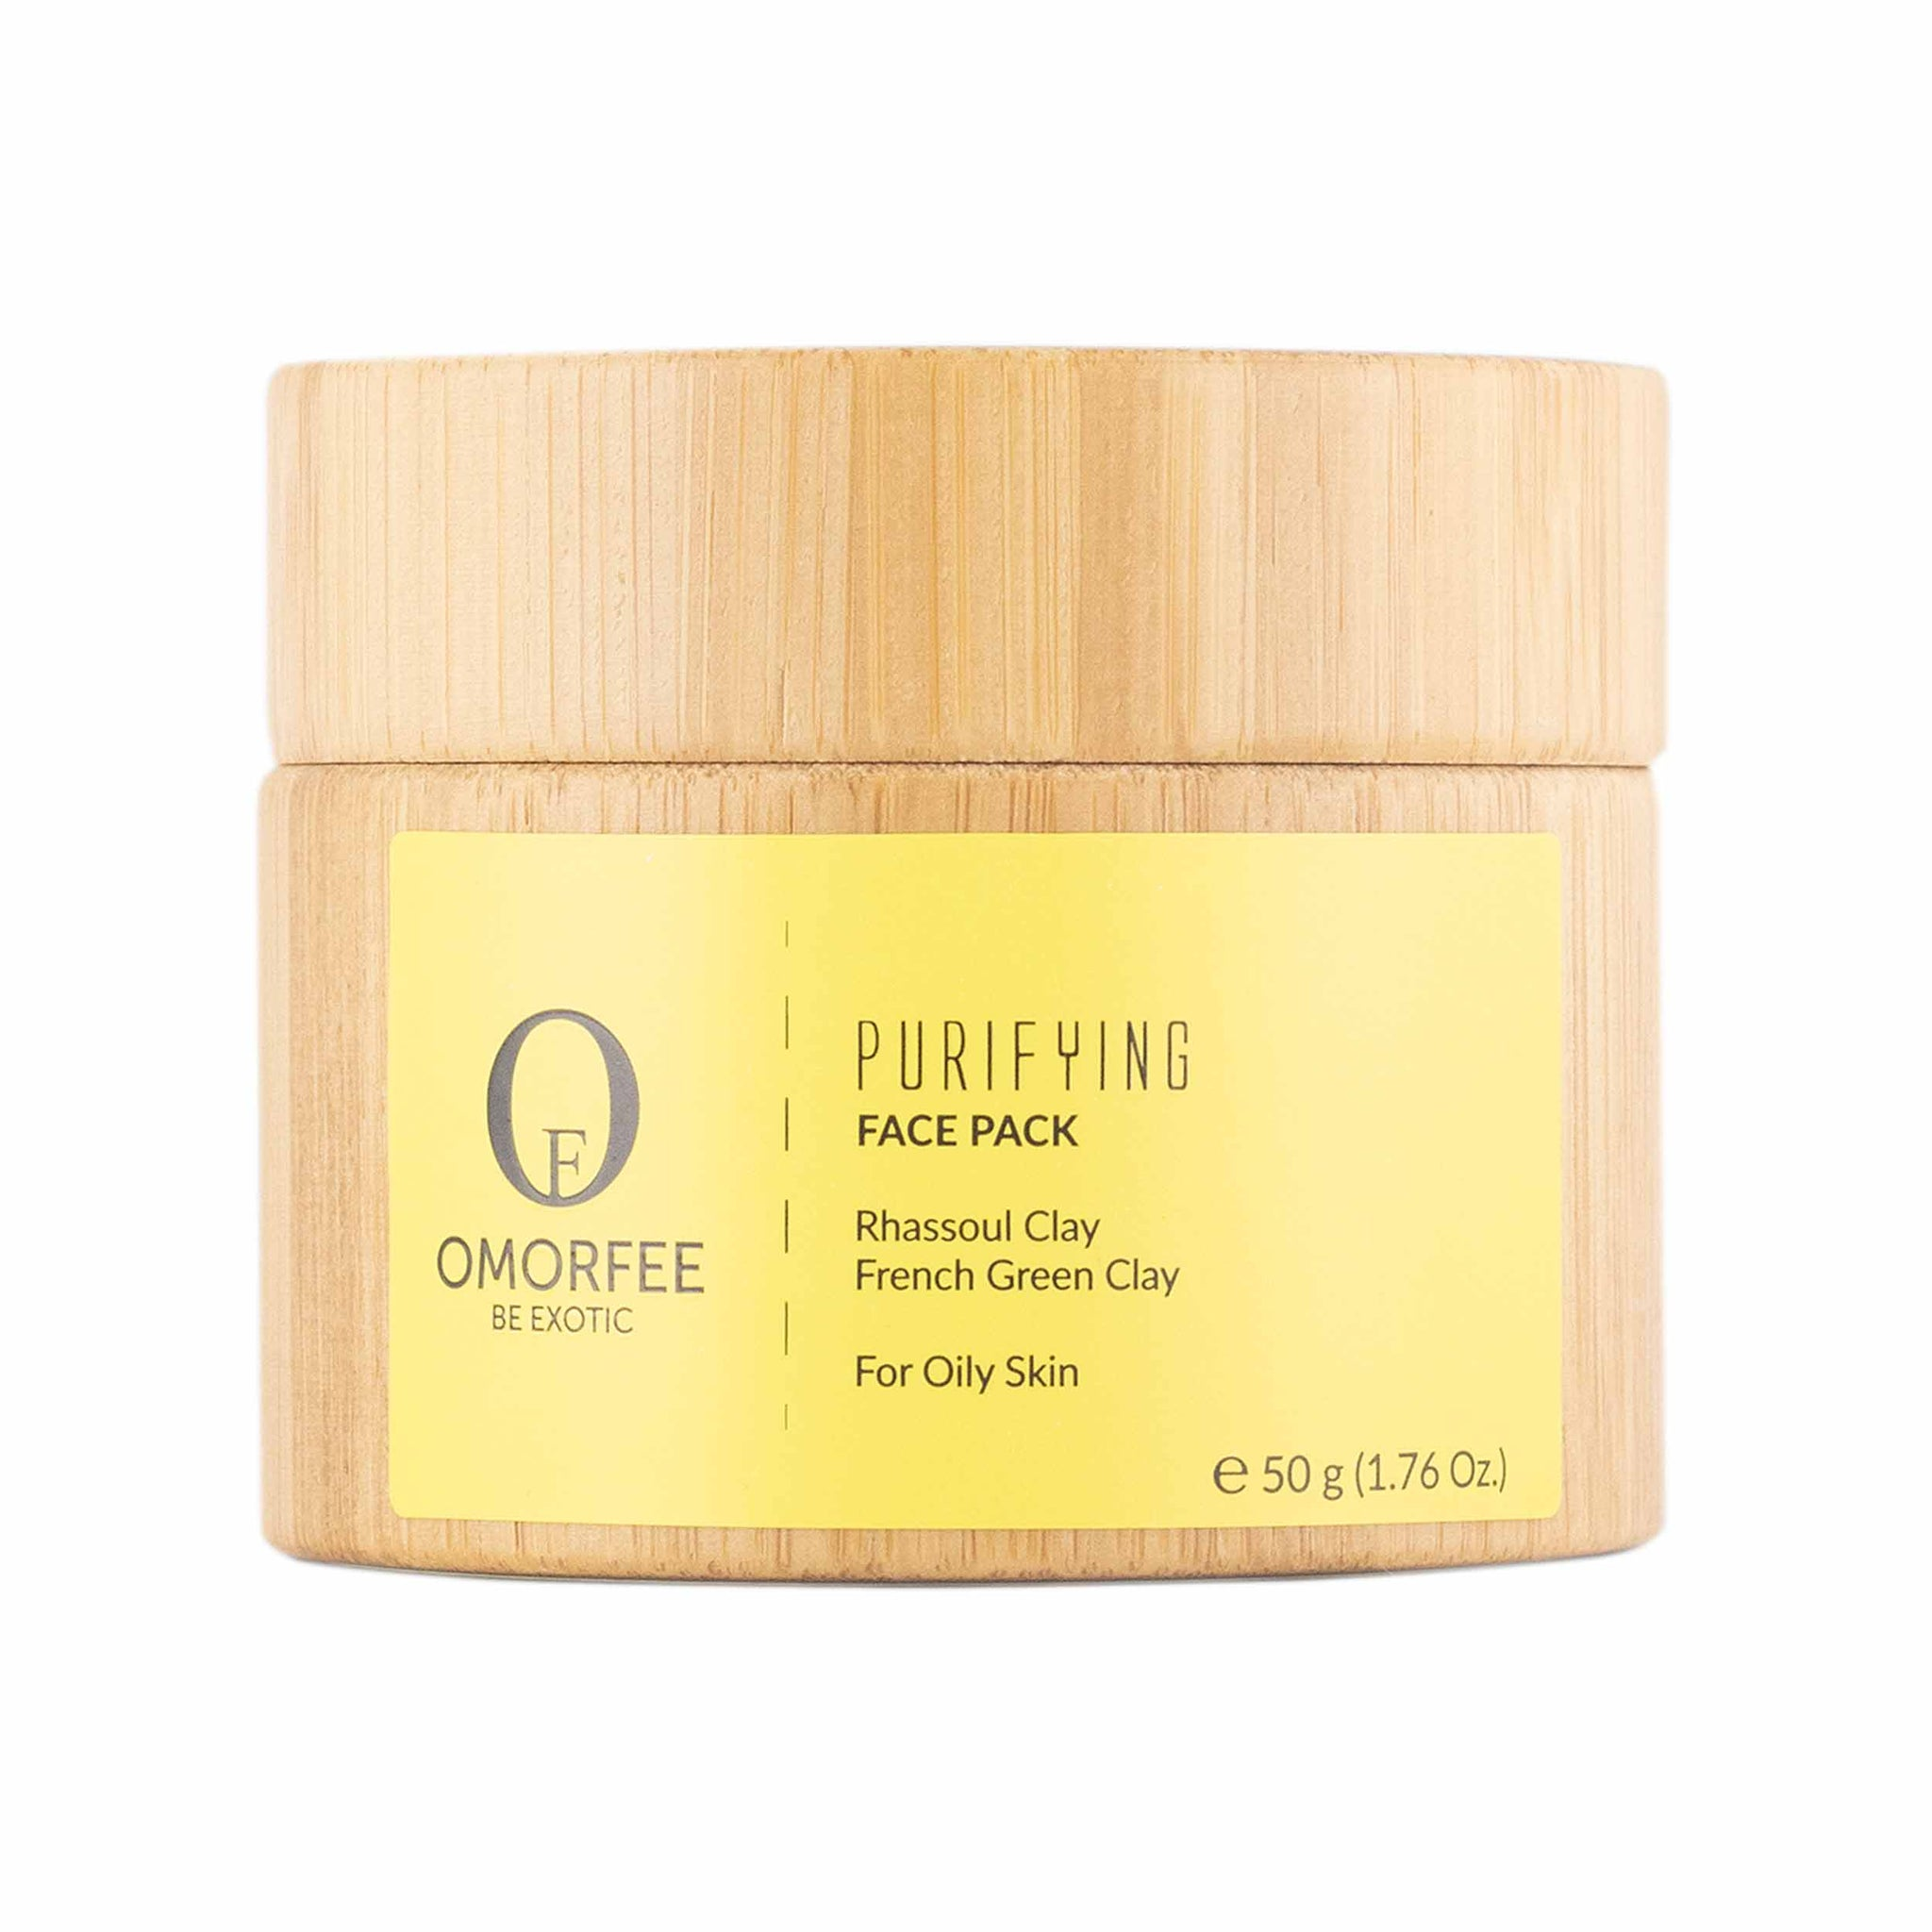 omorfee-purifying-face-pack-organic-face-mask